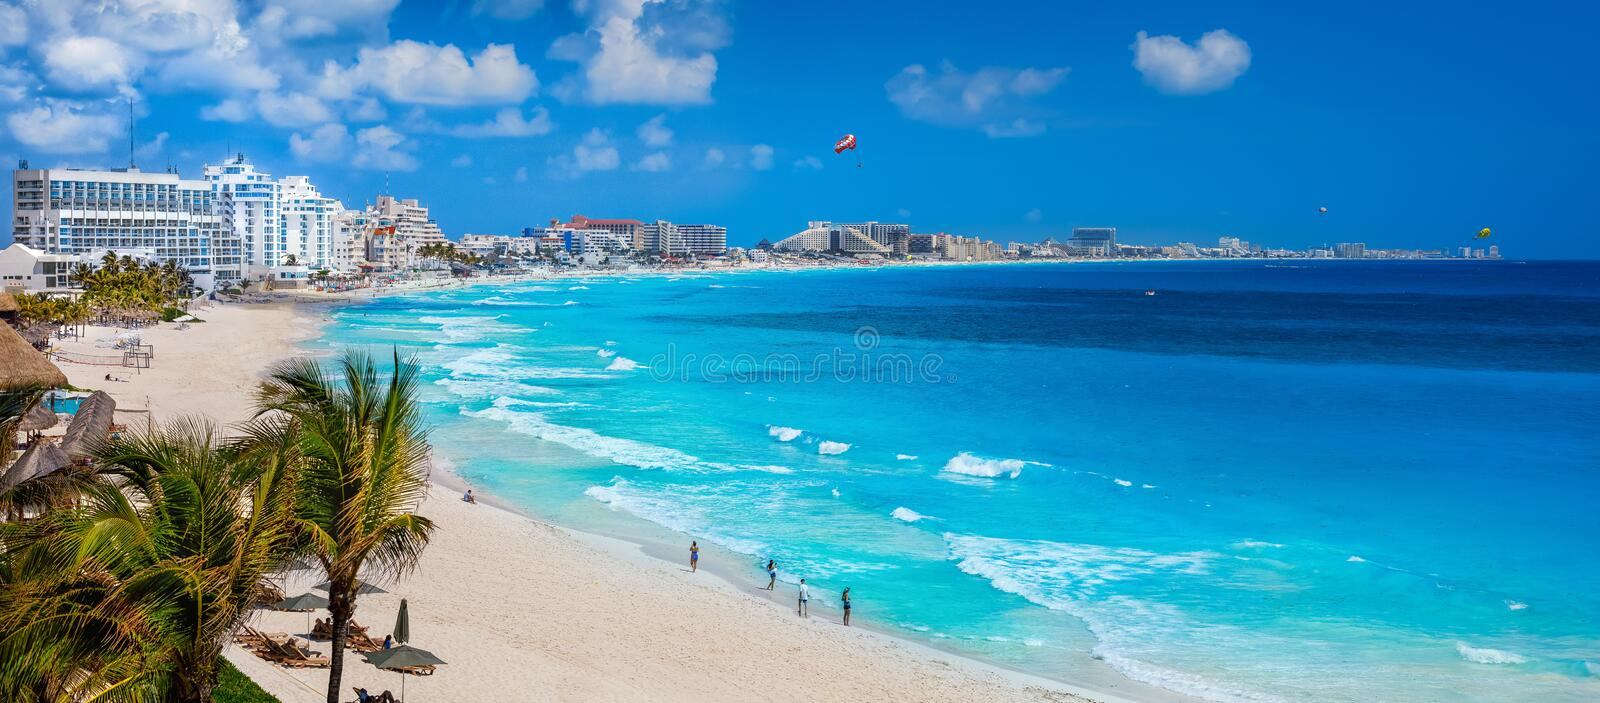 Cancun beach during the day. Cancun and the beach in the daytime with a drone